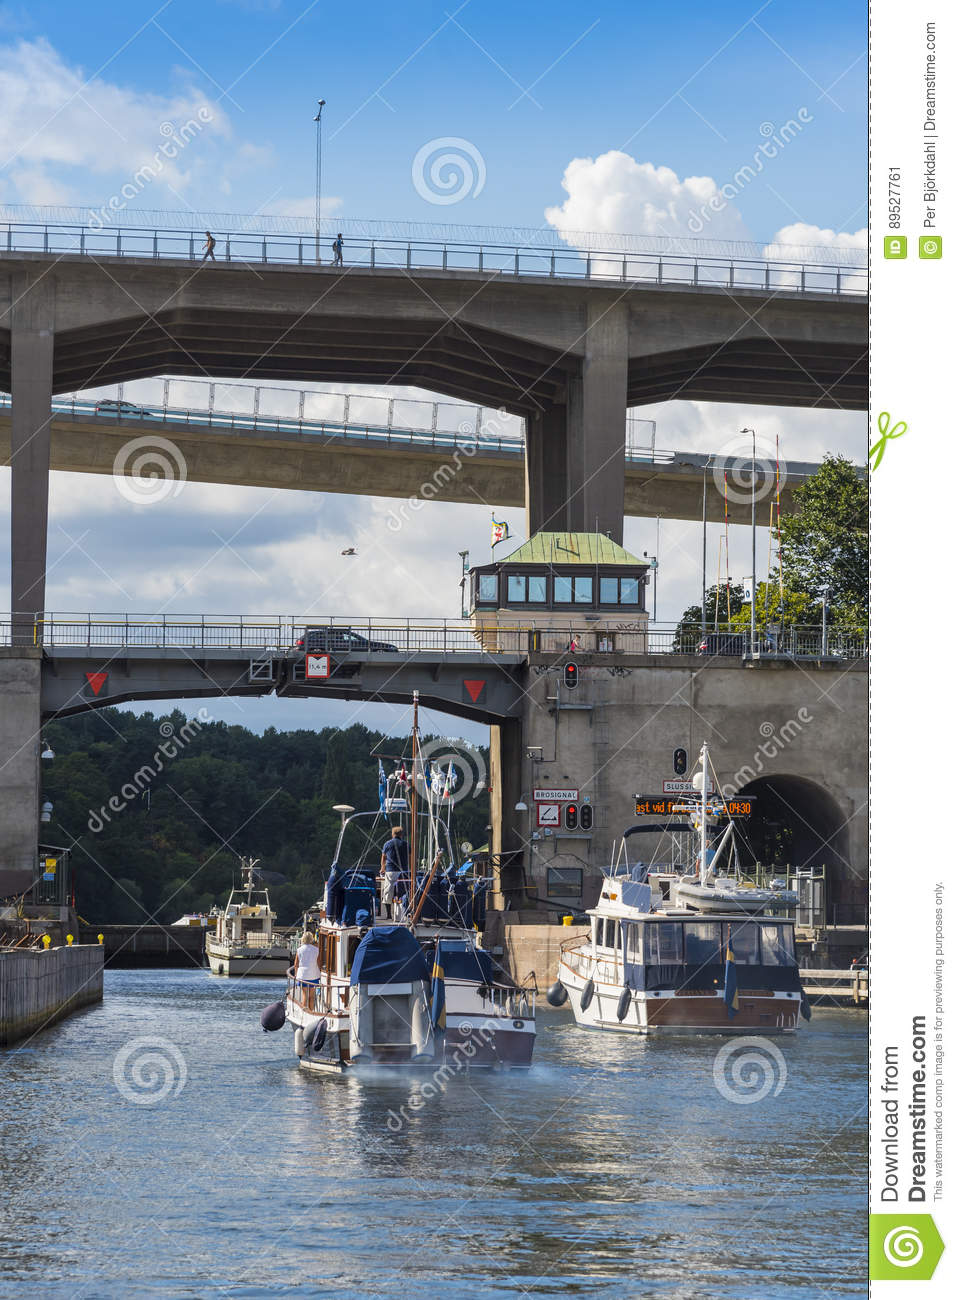 Stockholm: Motorboats pass through a lock